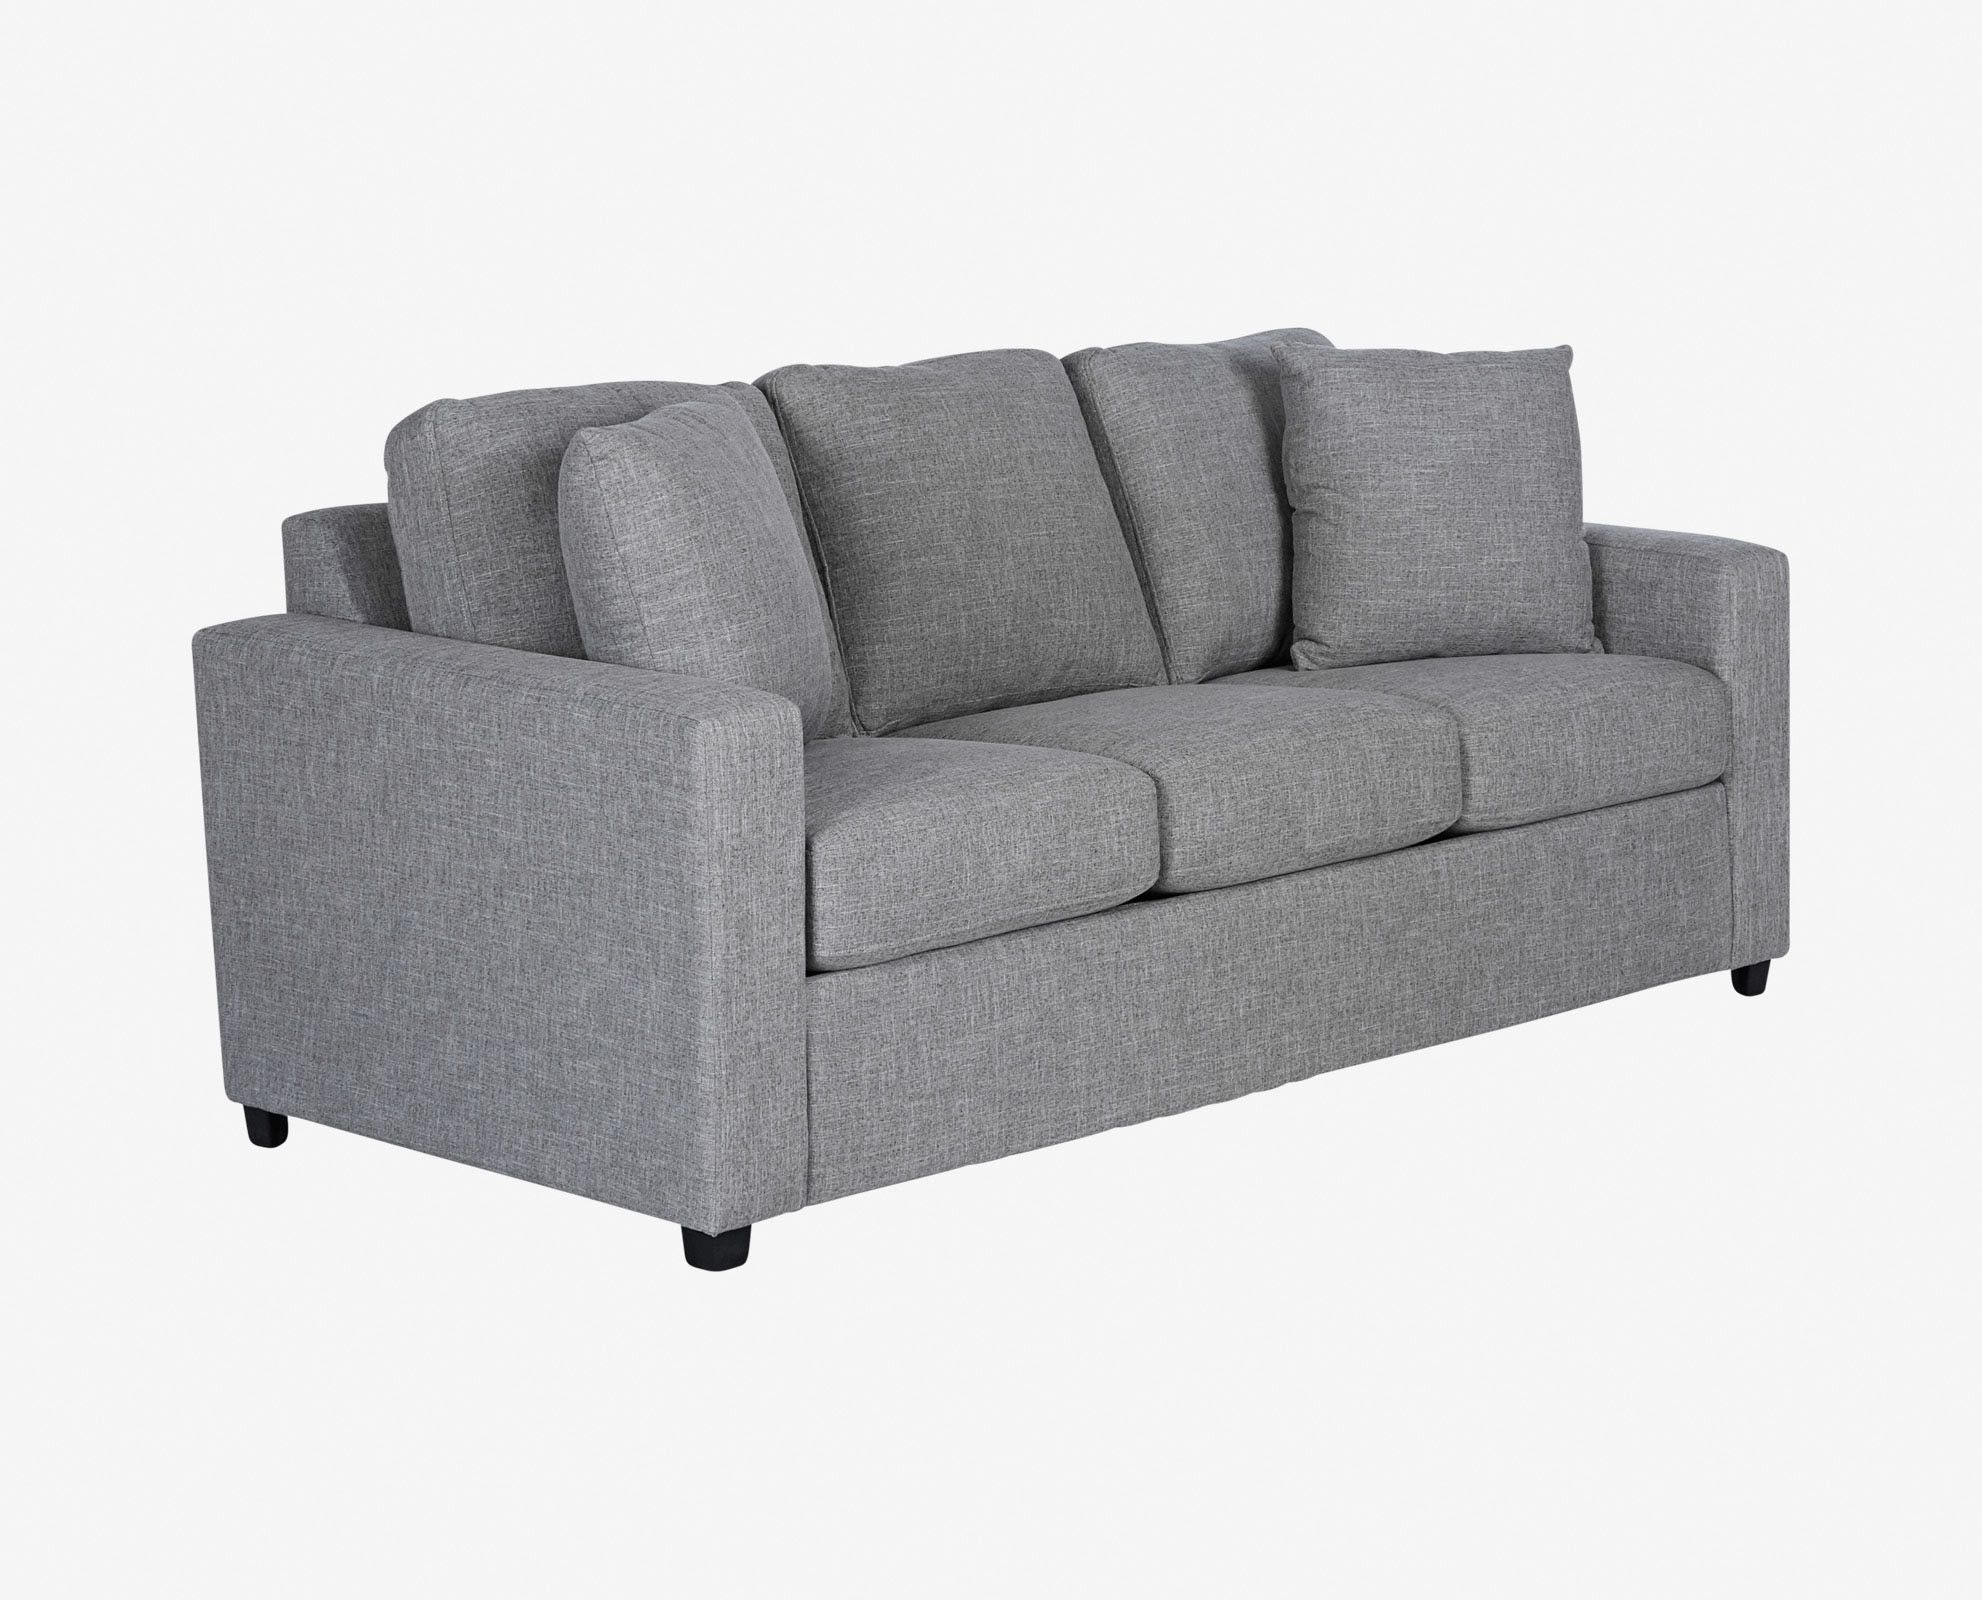 Morsa Queen Sleeper Sofa Unique Living Room Furniture